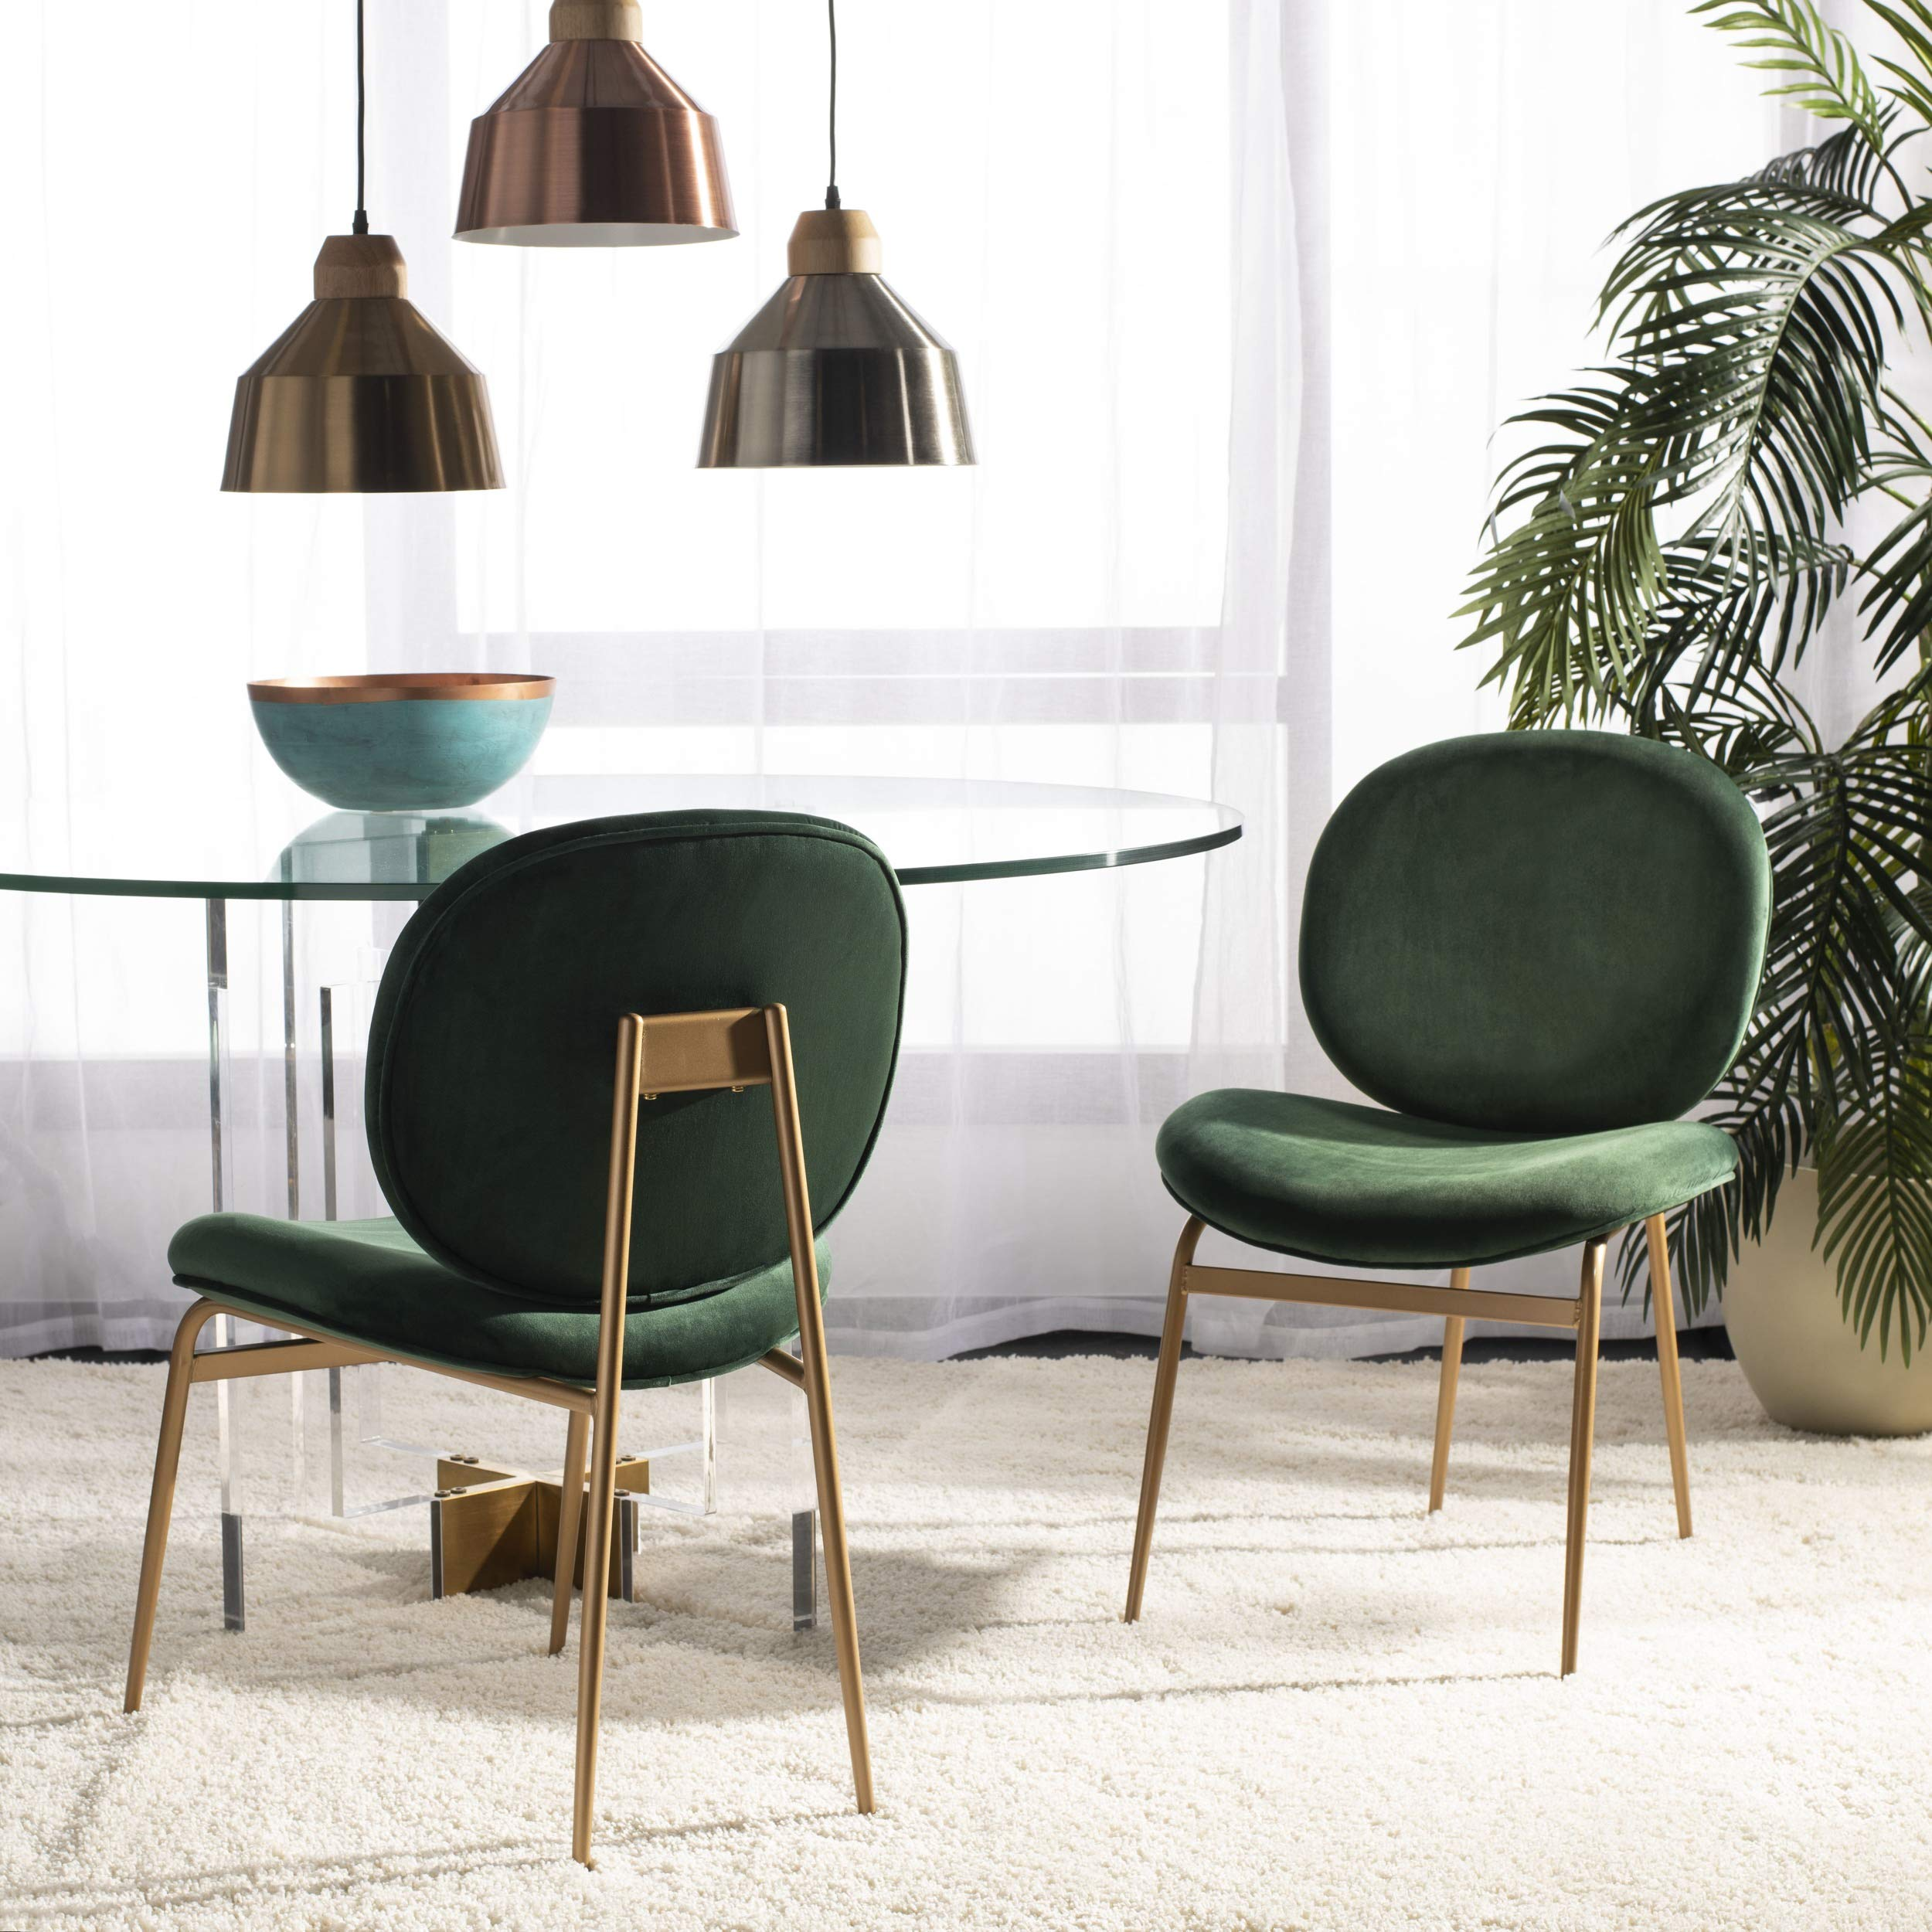 Safavieh Home Collection Jordana Round Malachite Green and Gold Side Accent Chair, by Safavieh